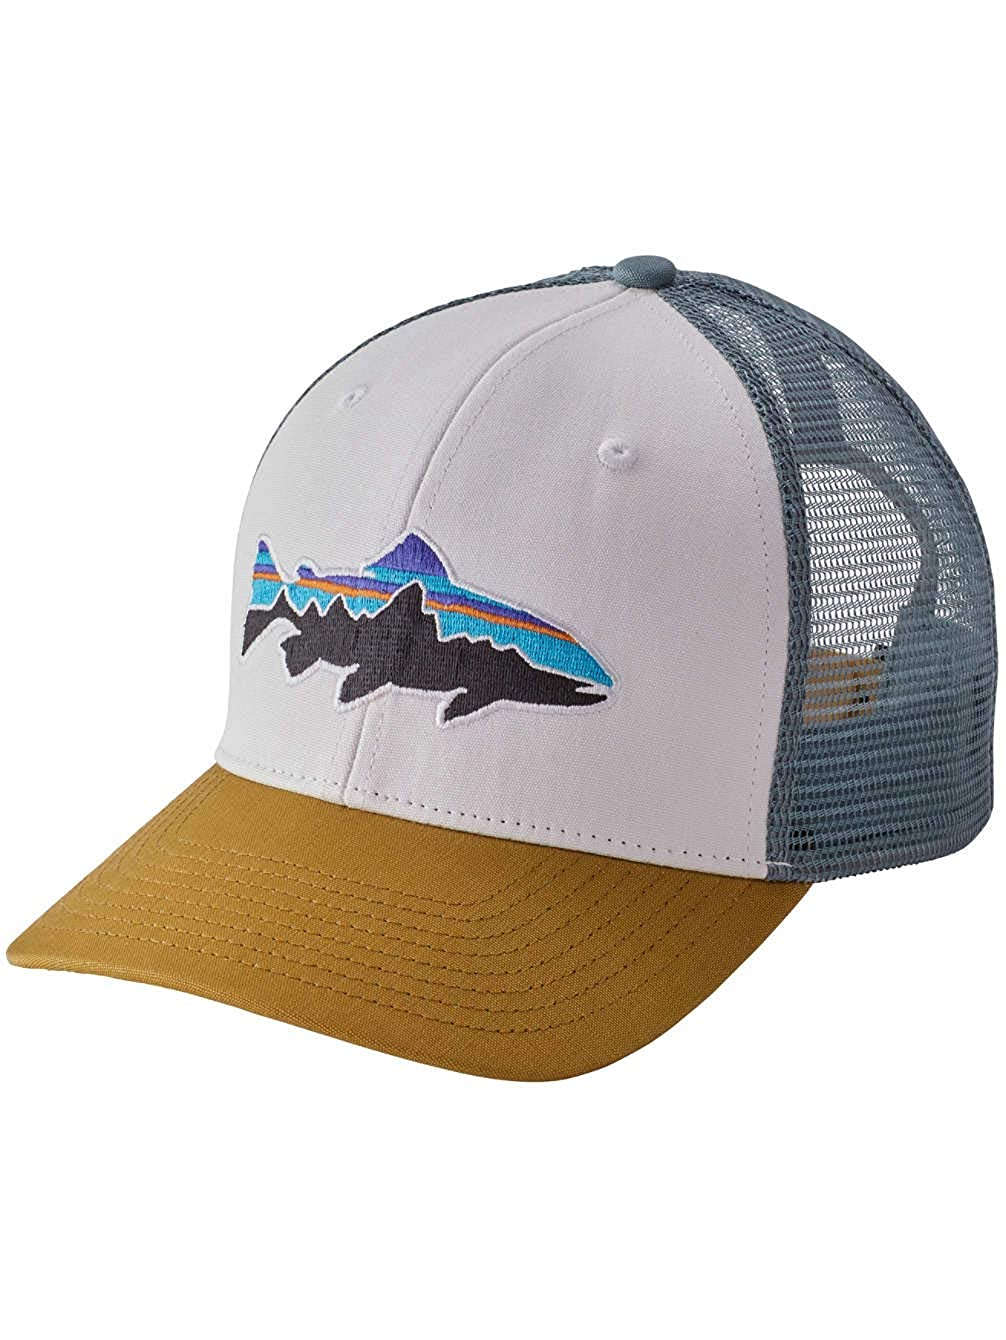 e9271d5af53cd Amazon.com: Patagonia Fitz Roy Trout Trucker Hat (Black): Sports & Outdoors